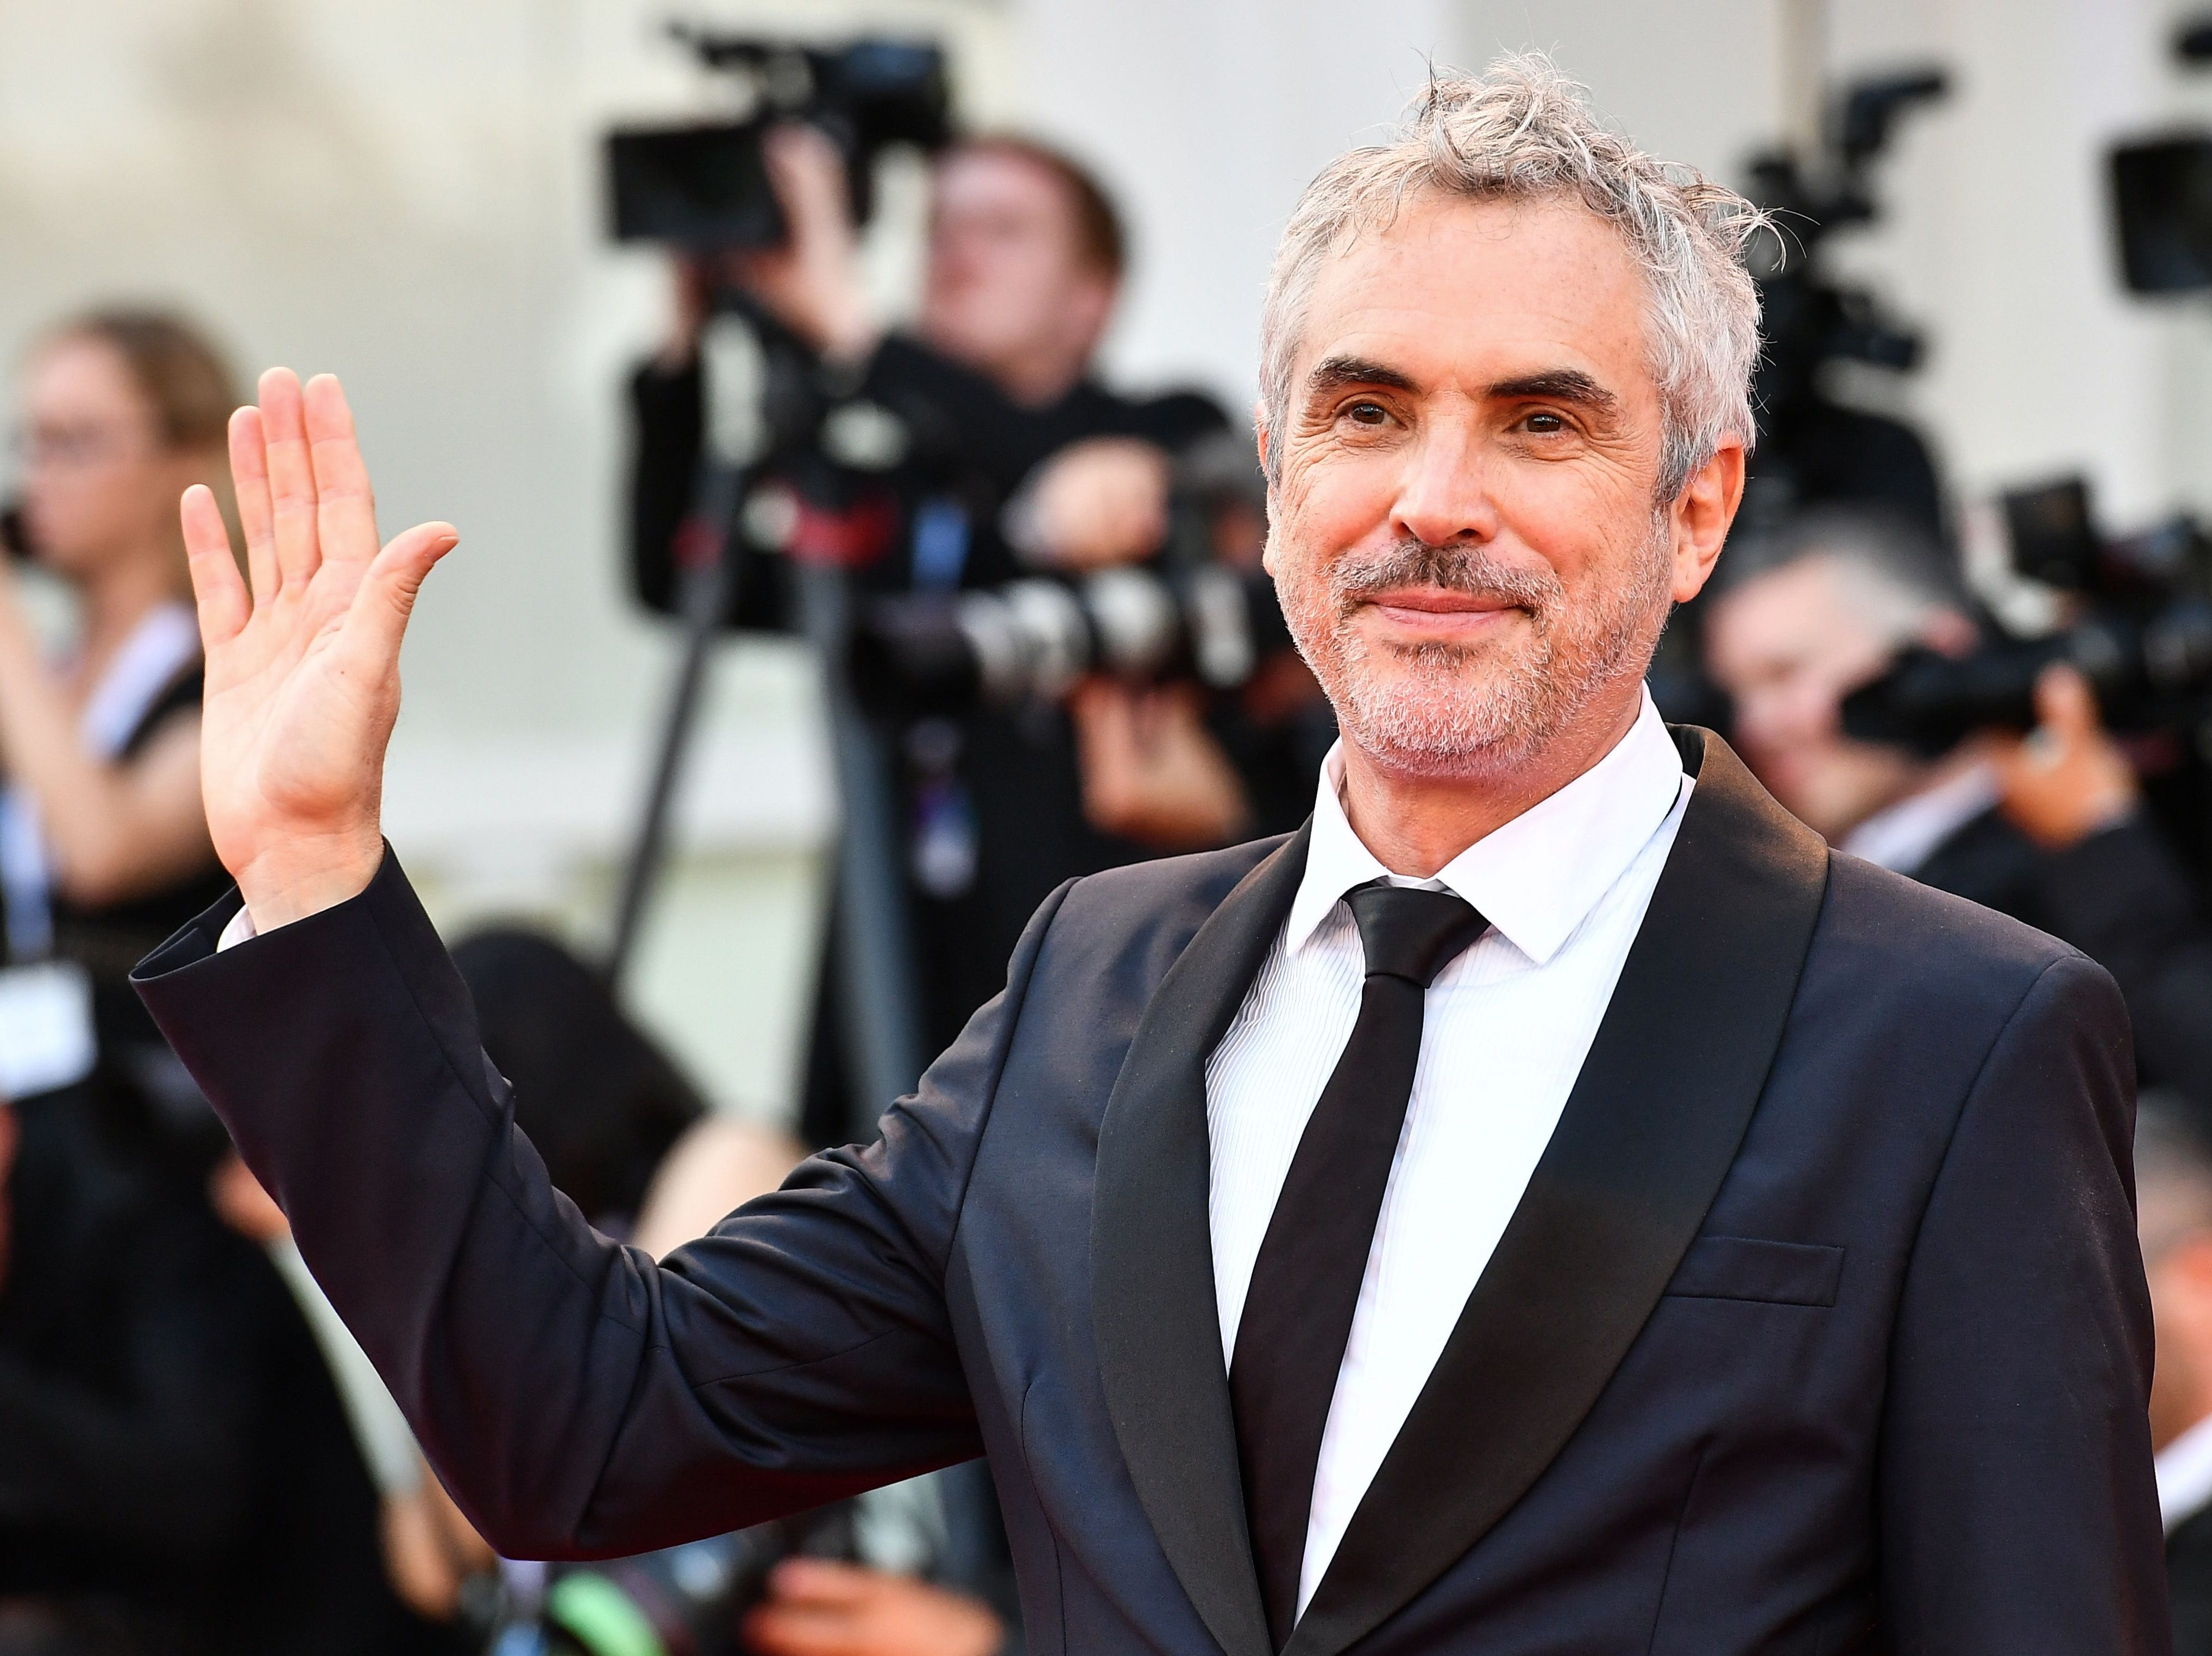 """Director Alfonso Cuaron arrives for the premiere of the film """"Roma"""" presented in competition on August 30, 2018 during the 75th Venice Film Festival at Venice Lido. (Photo by Vincenzo PINTO / AFP)VINCENZO PINTO/AFP/Getty Images ORIG FILE ID: AFP_18Q1H6"""